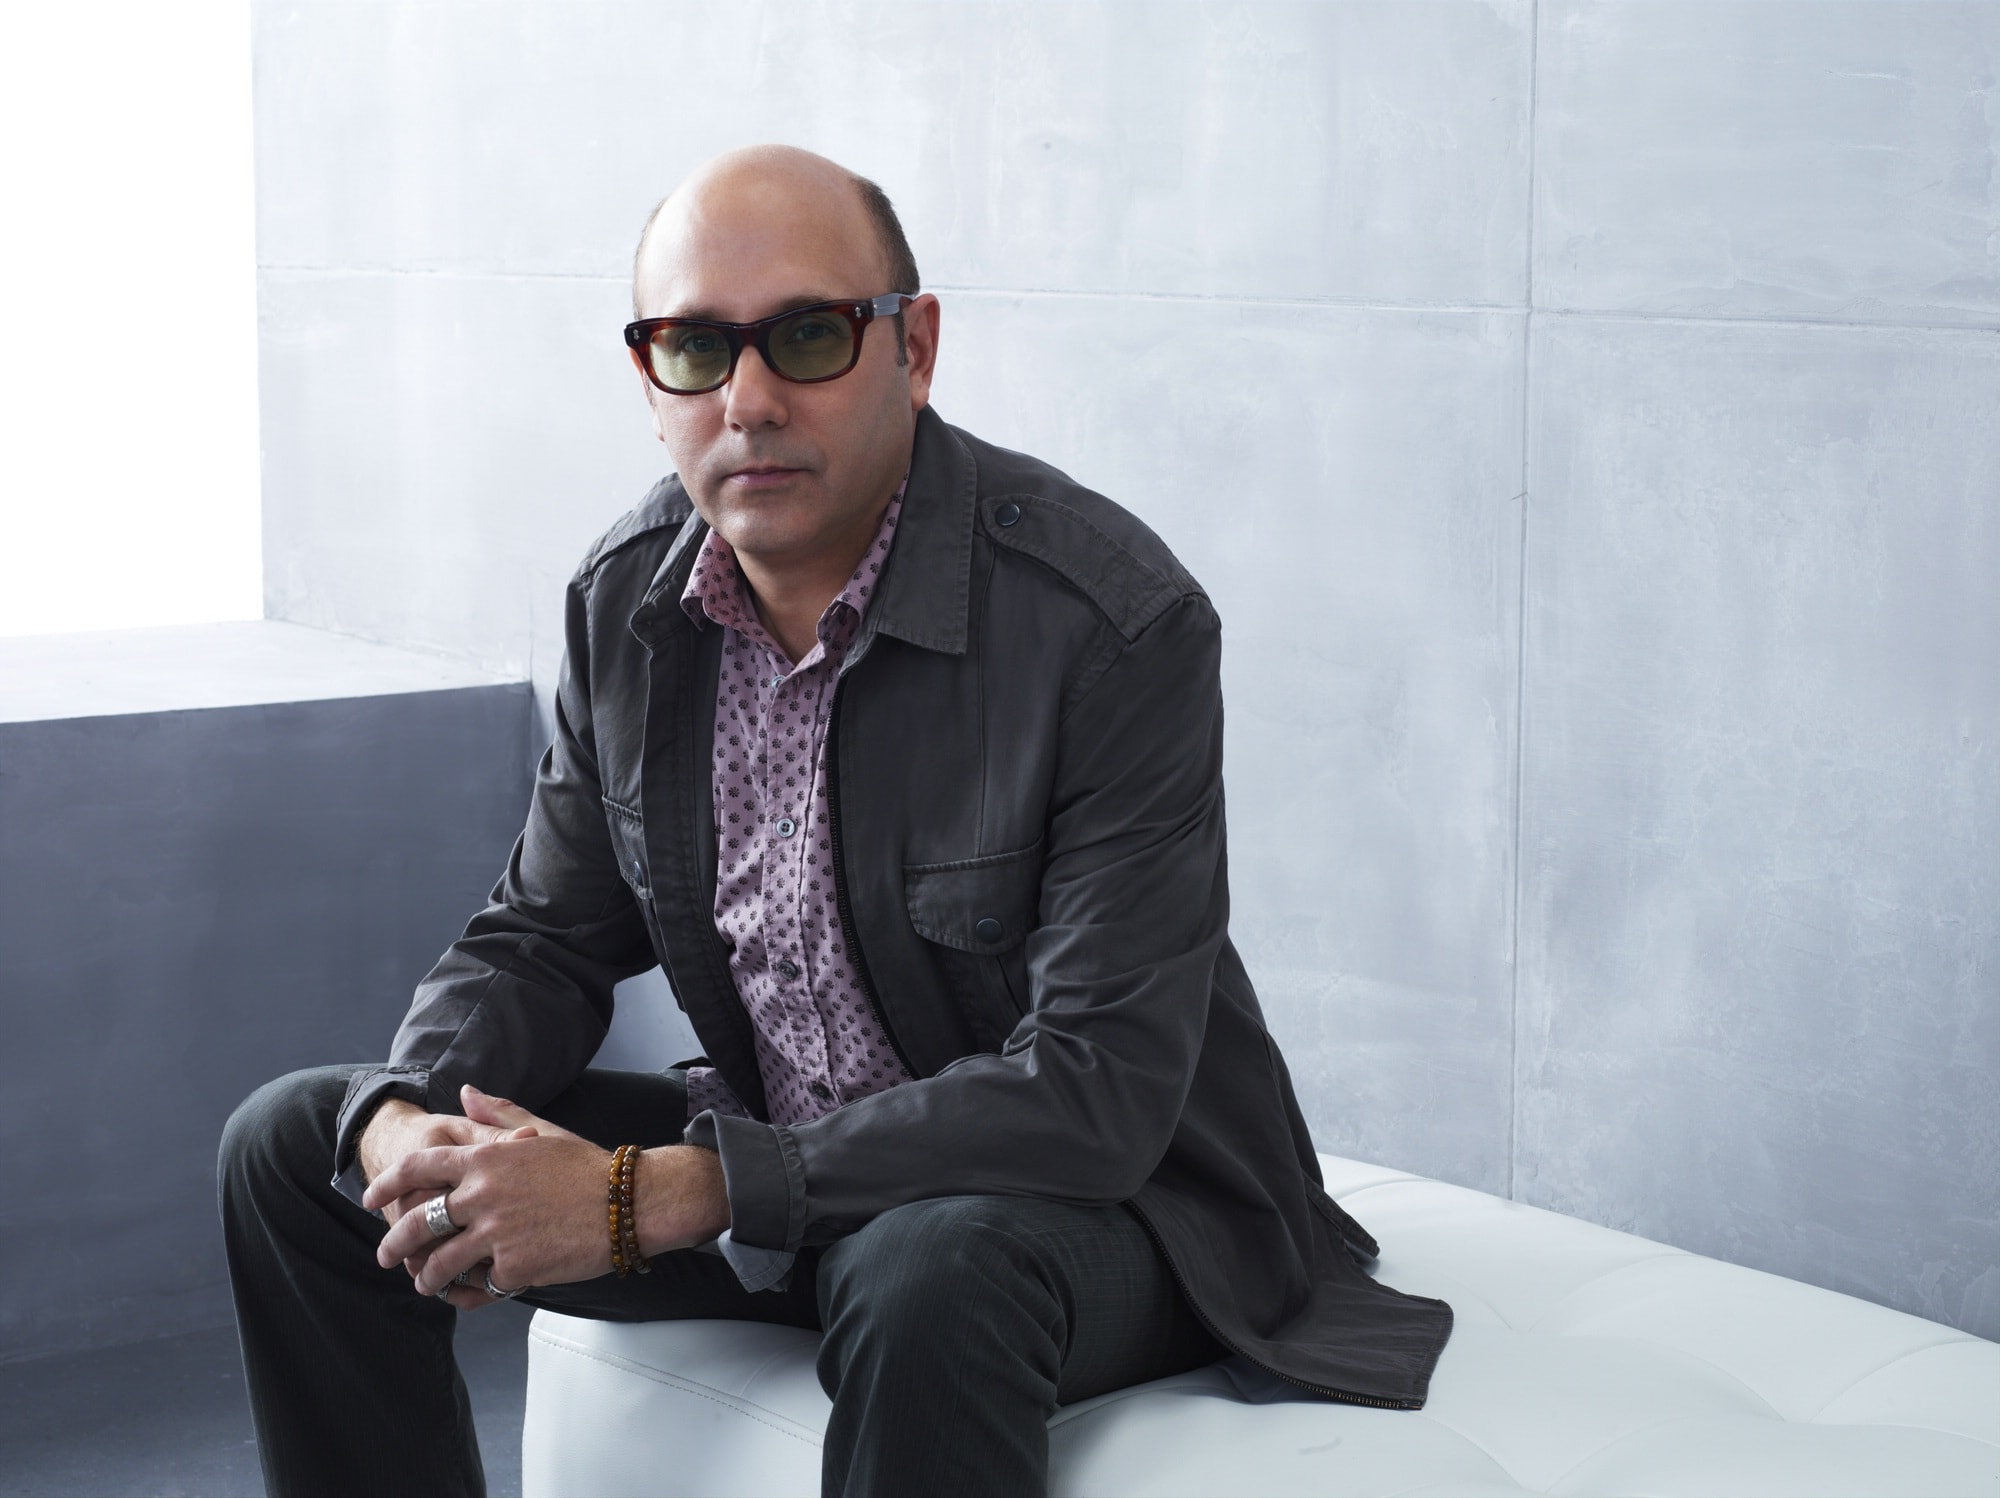 Willie Garson Background